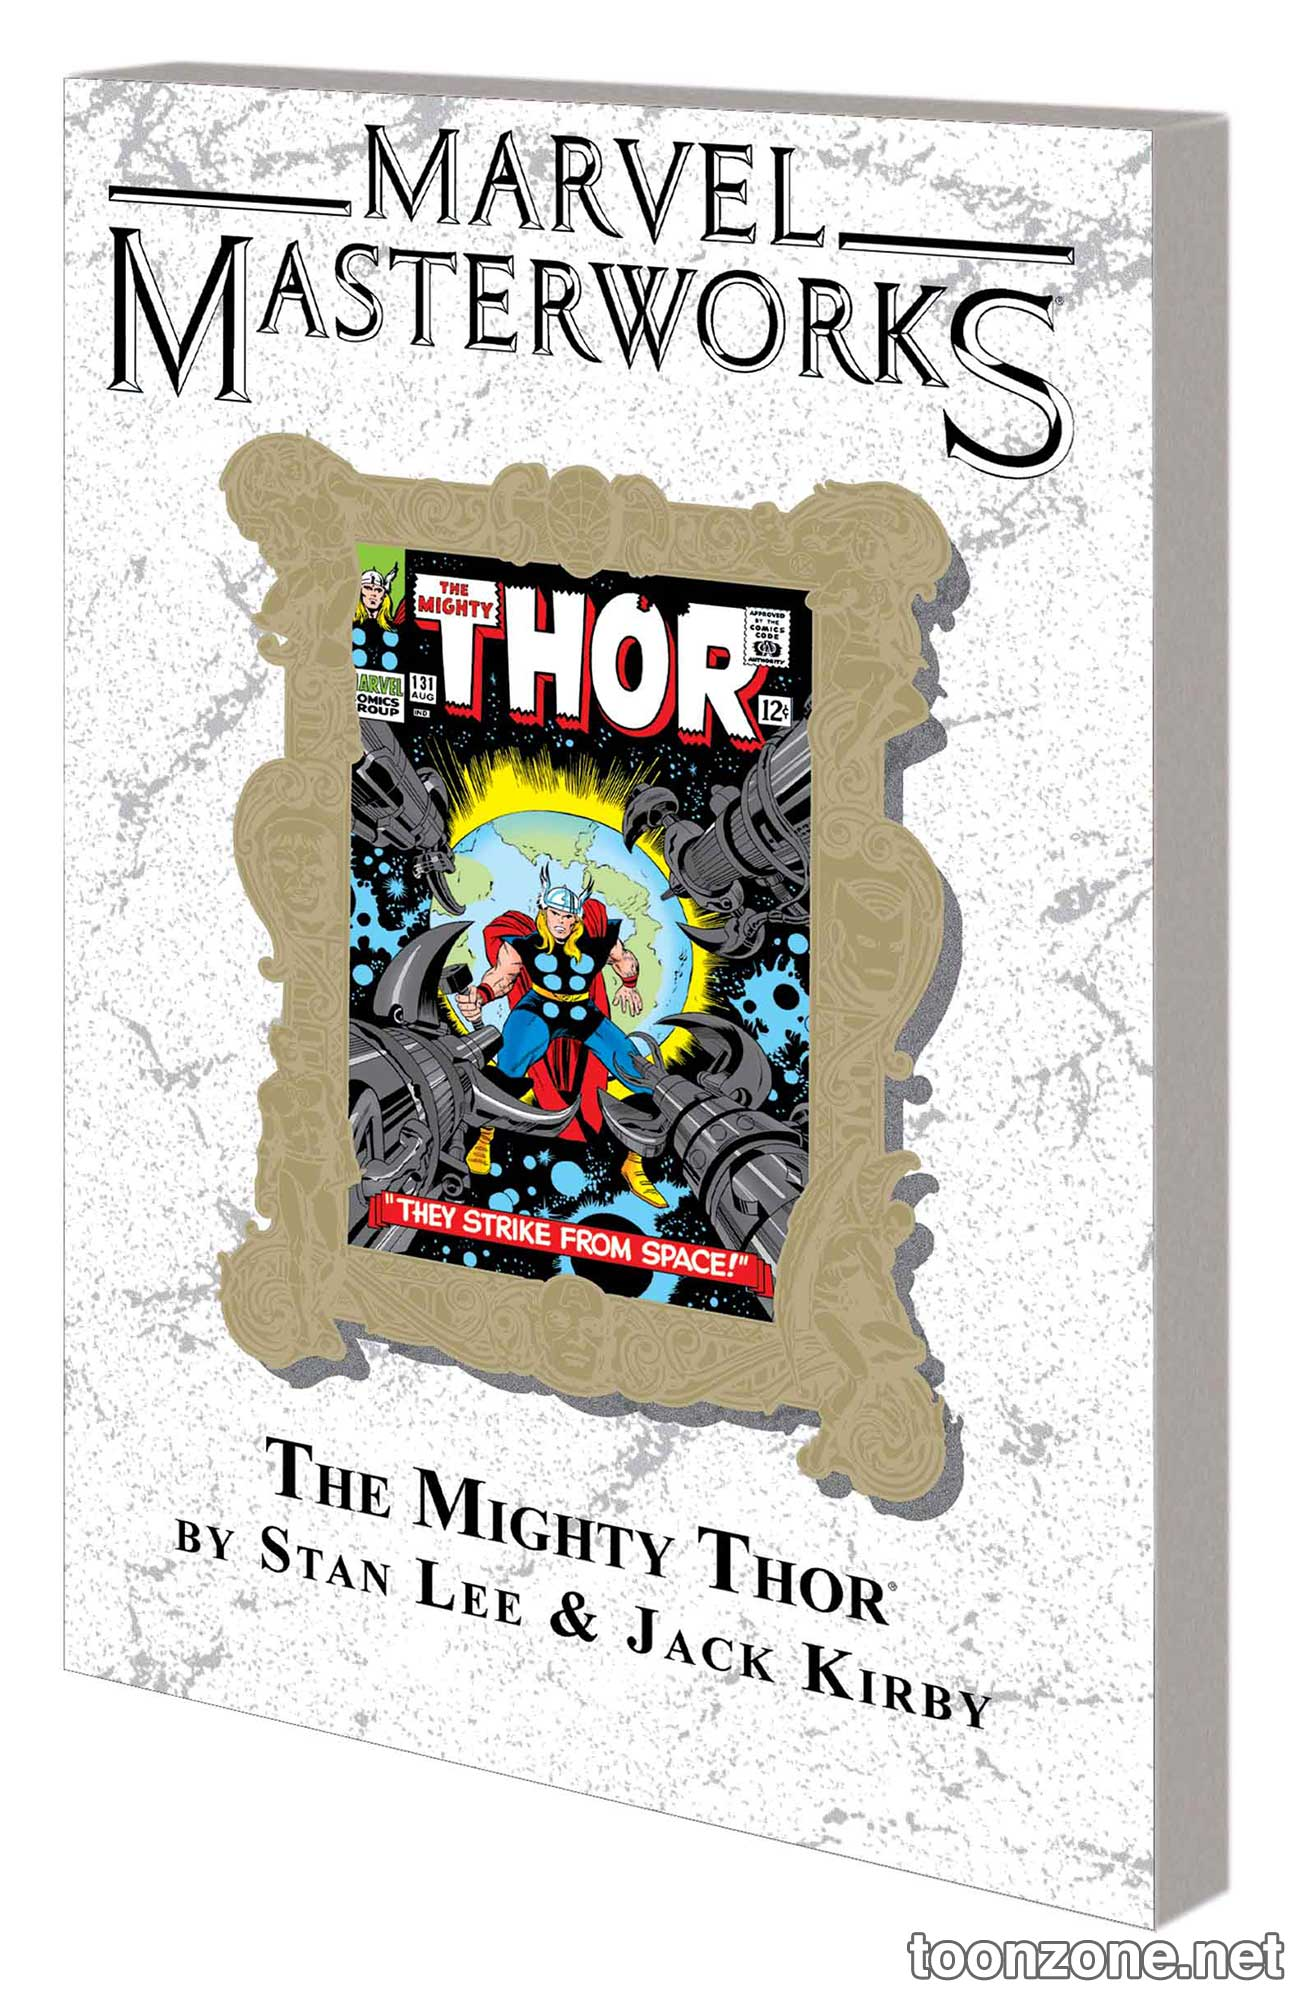 MARVEL MASTERWORKS: THE MIGHTY THOR VOL. 5 TPB — VARIANT EDITION VOL. 69 (DM ONLY)